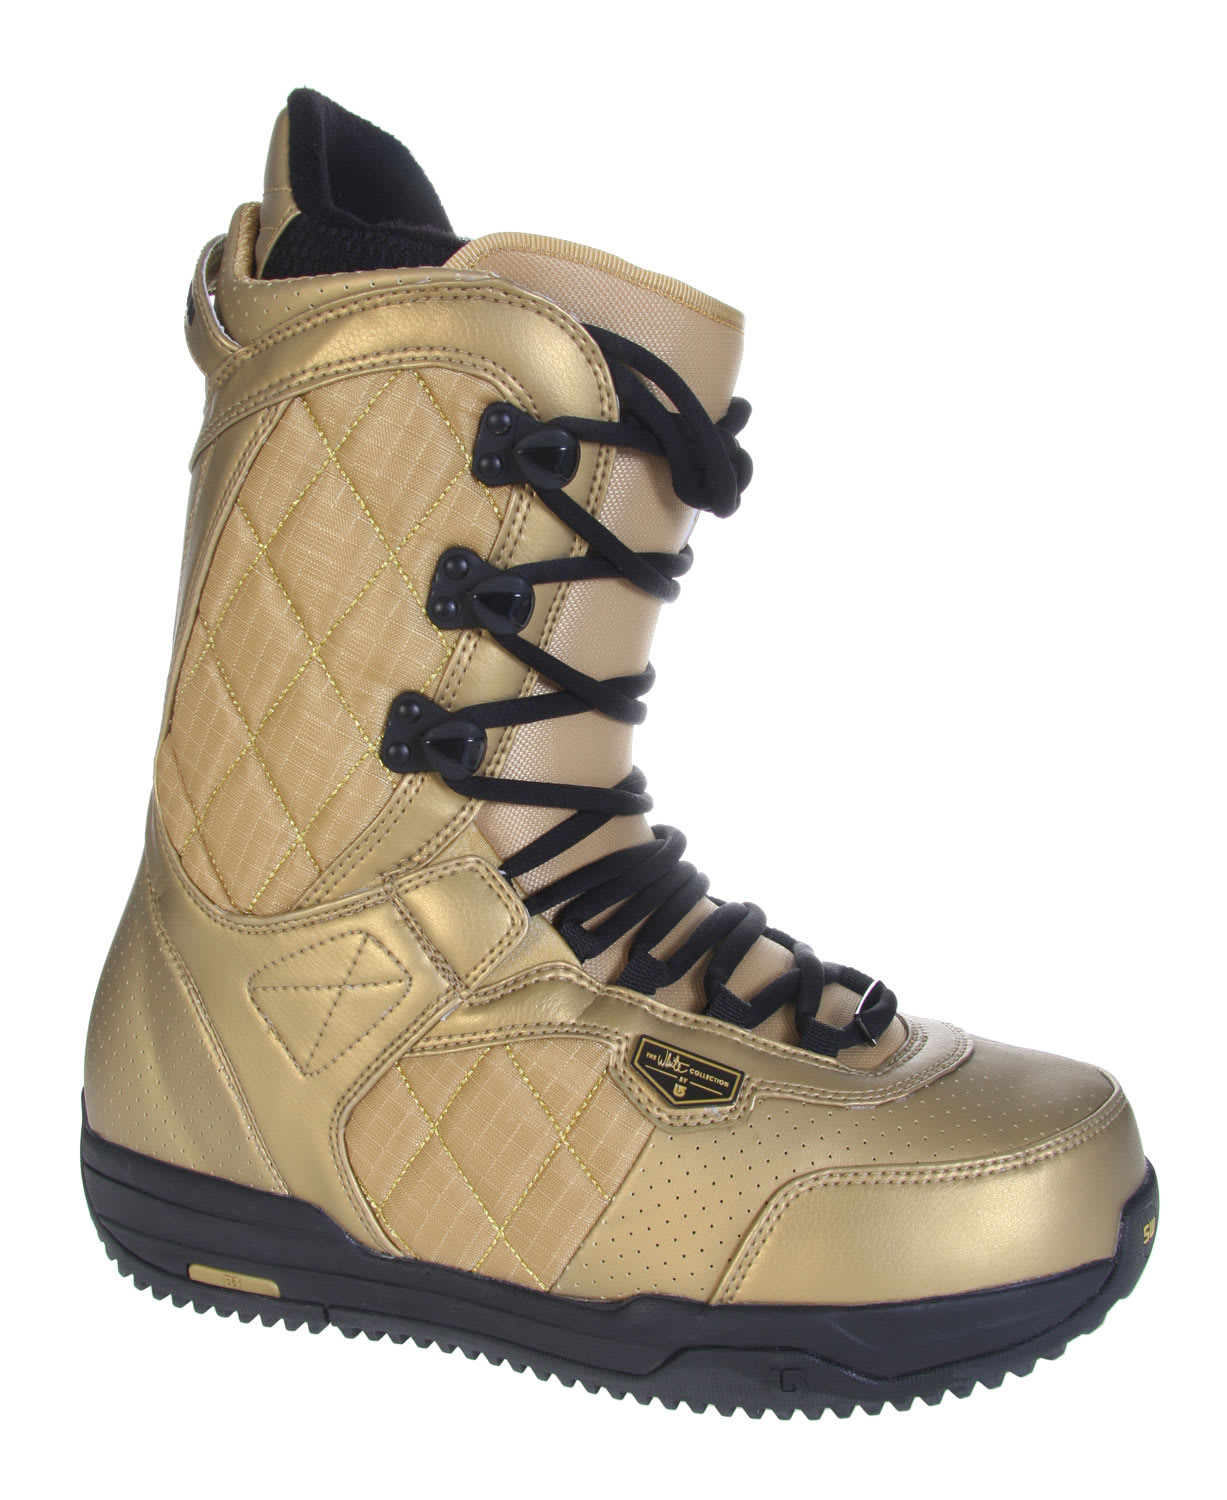 Shop for Burton Shaun White Snowboard Boots Gold - Men's